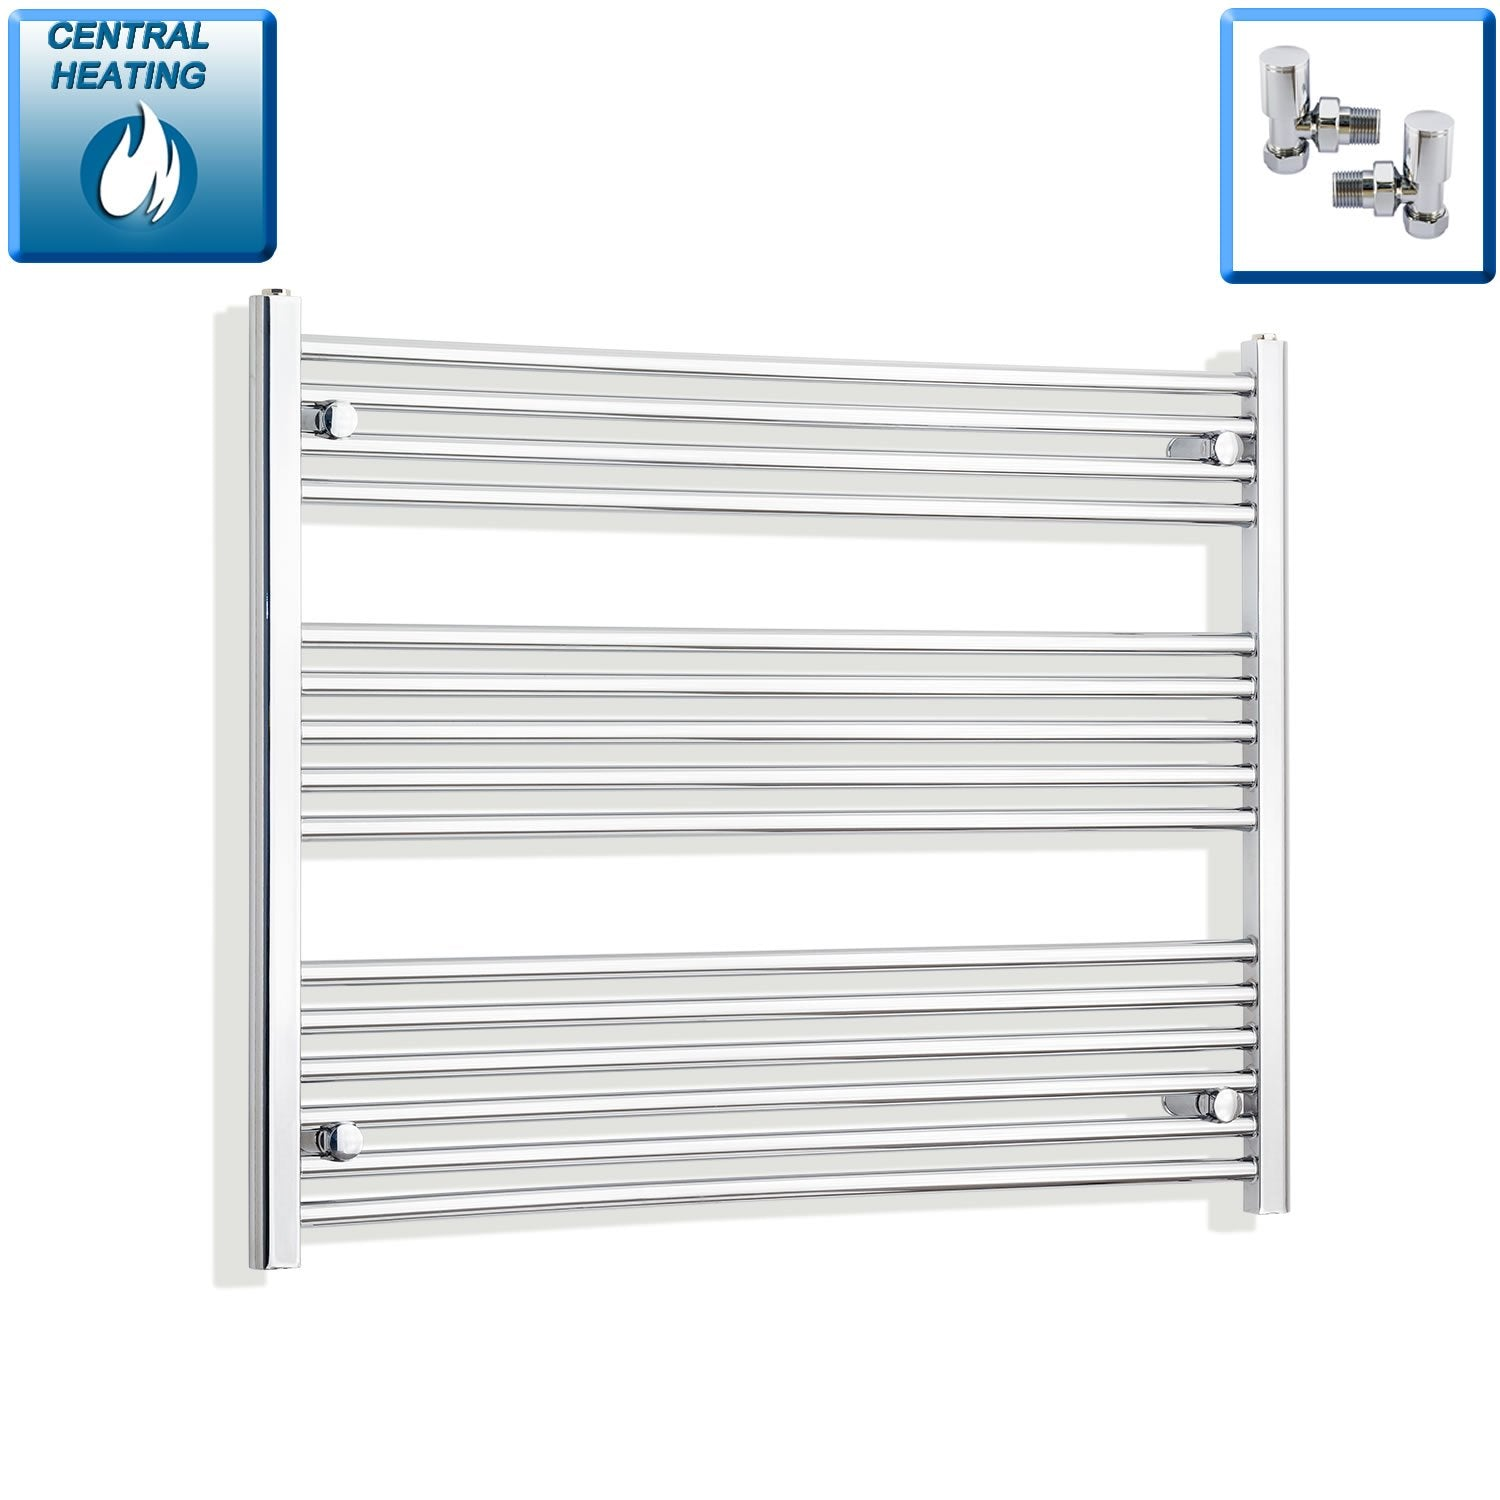 1000mm Wide 800mm High Flat Chrome Heated Towel Rail Radiator HTR,With Angled Valve